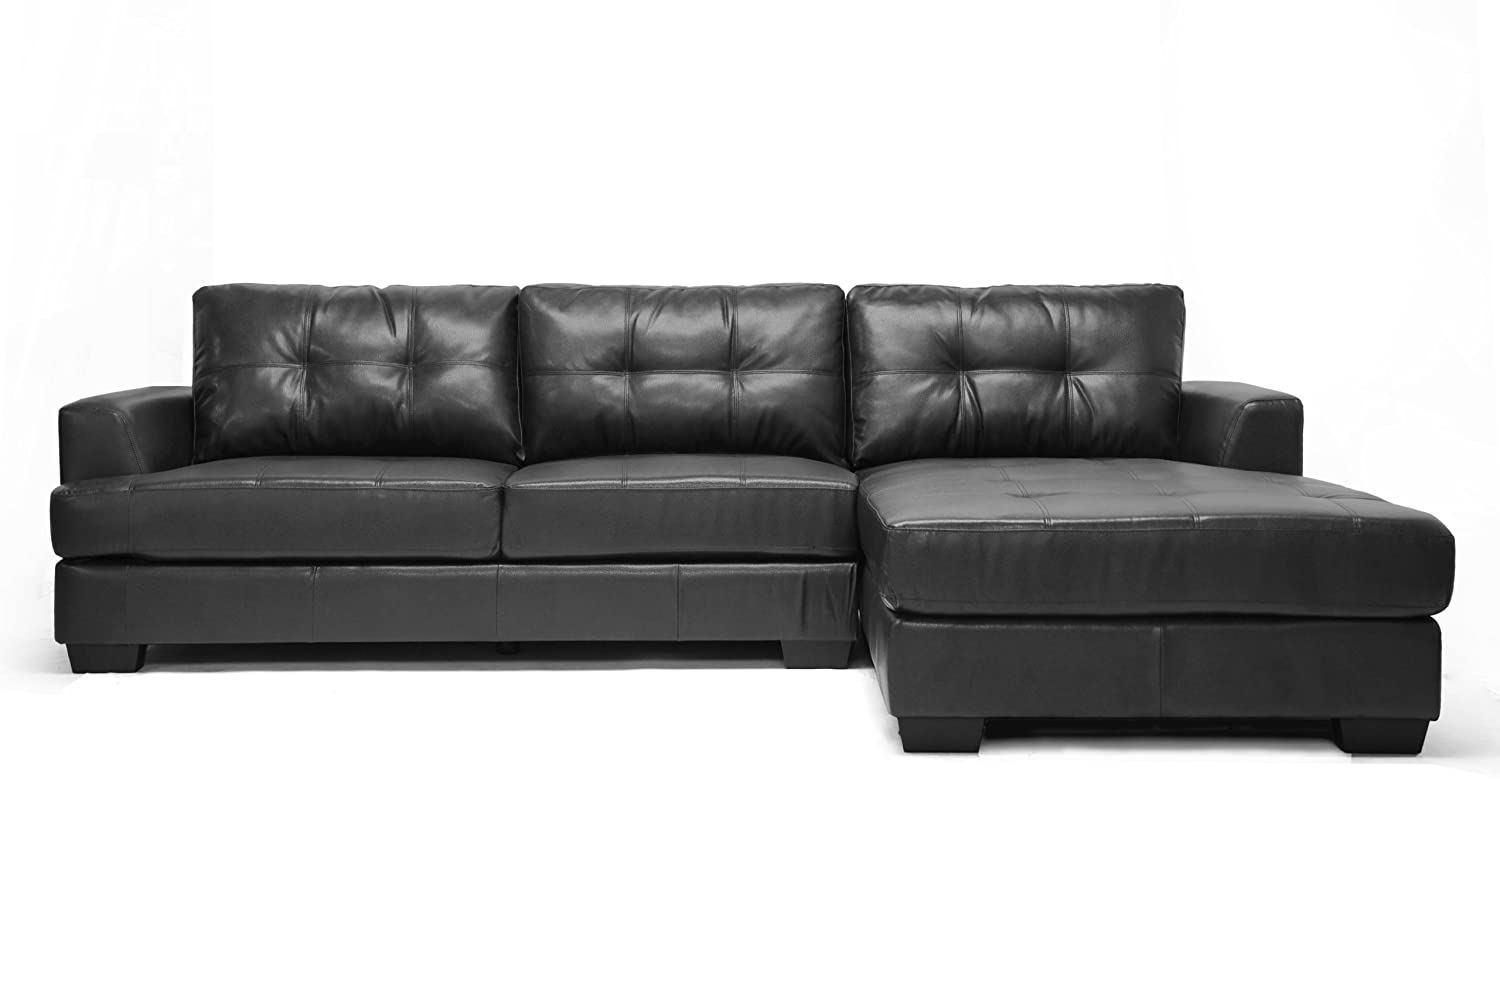 Black Leather Couch Part - 34: Amazon.com: Baxton Studio Dobson Leather Modern Sectional Sofa, Black:  Kitchen U0026 Dining